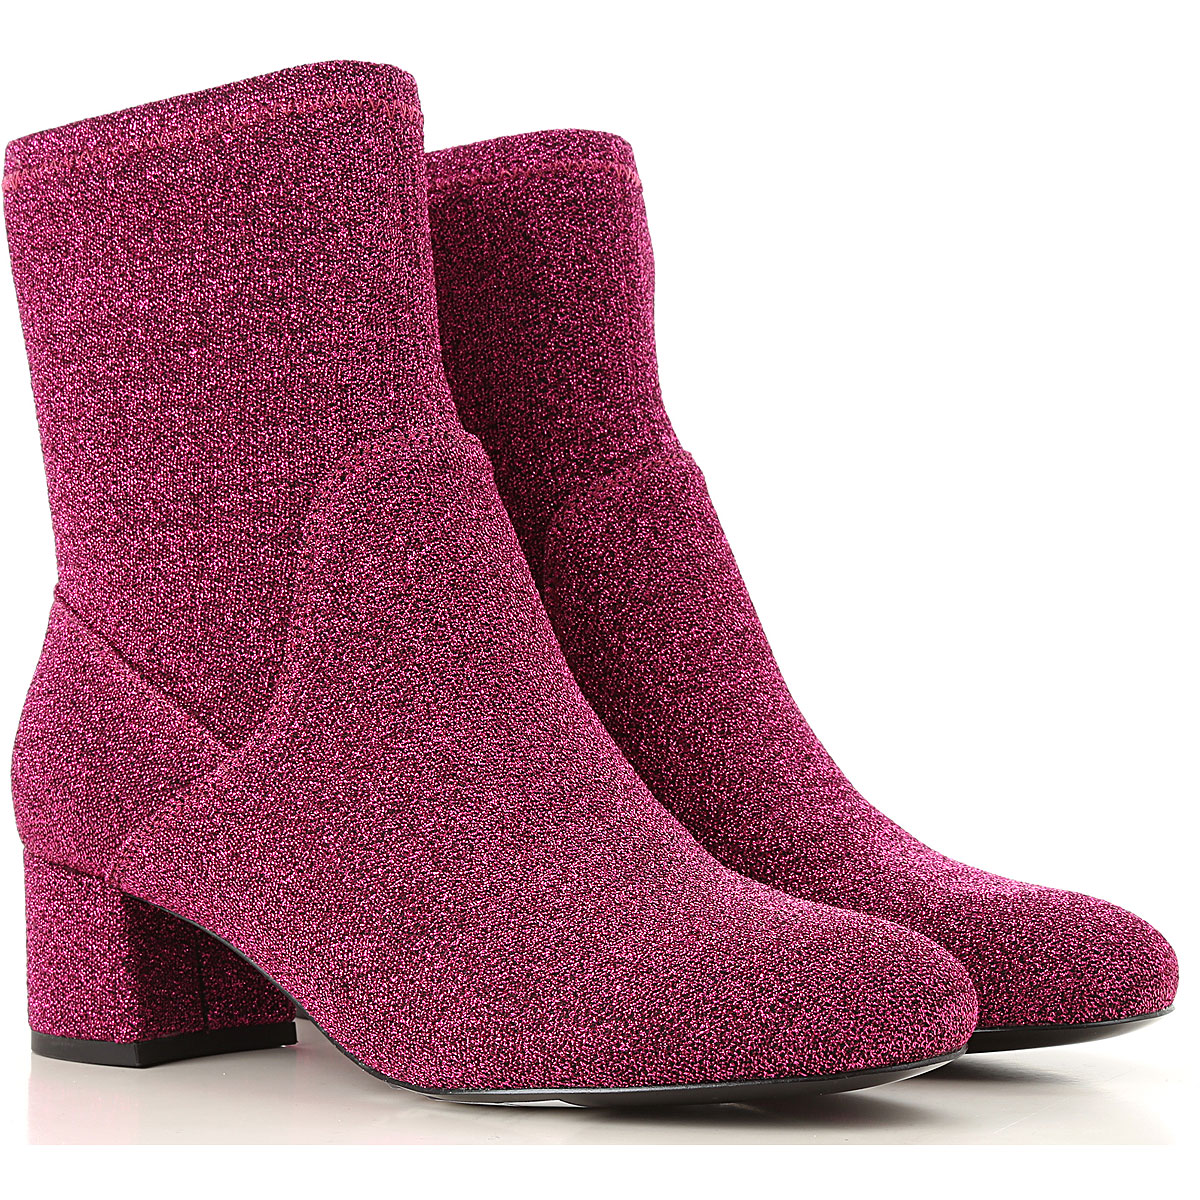 Image of ESSENTIEL Antwerp Boots for Women, Booties, Hot Coral, polyester, 2017, 10 6 7 8 9